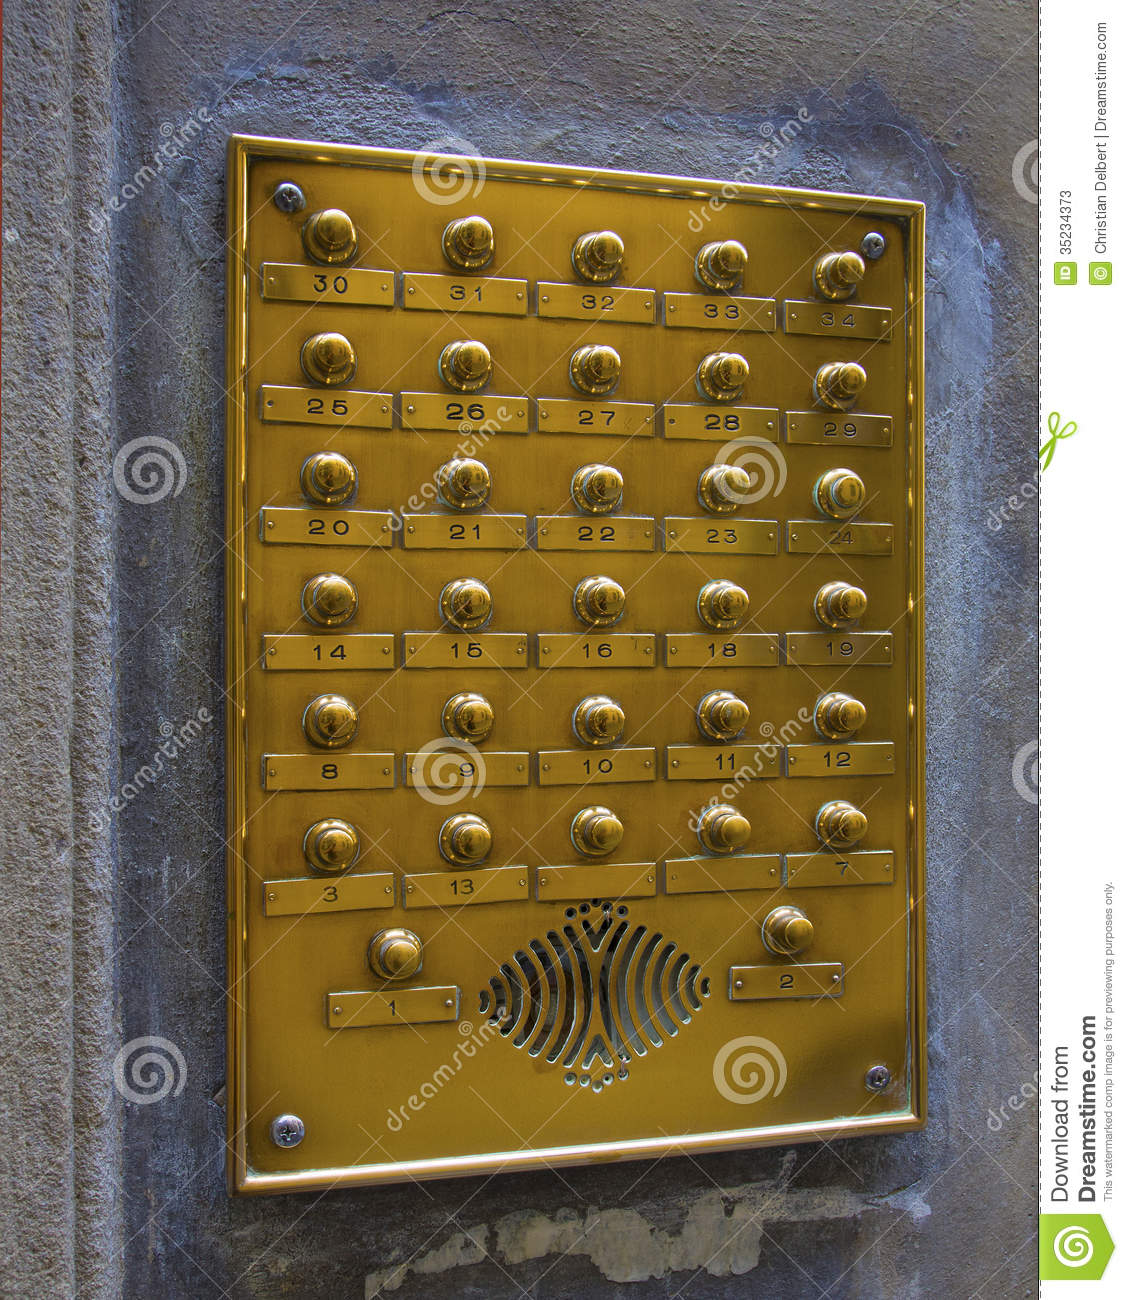 Door Entrance Intercom Stock Photos Image 35234373